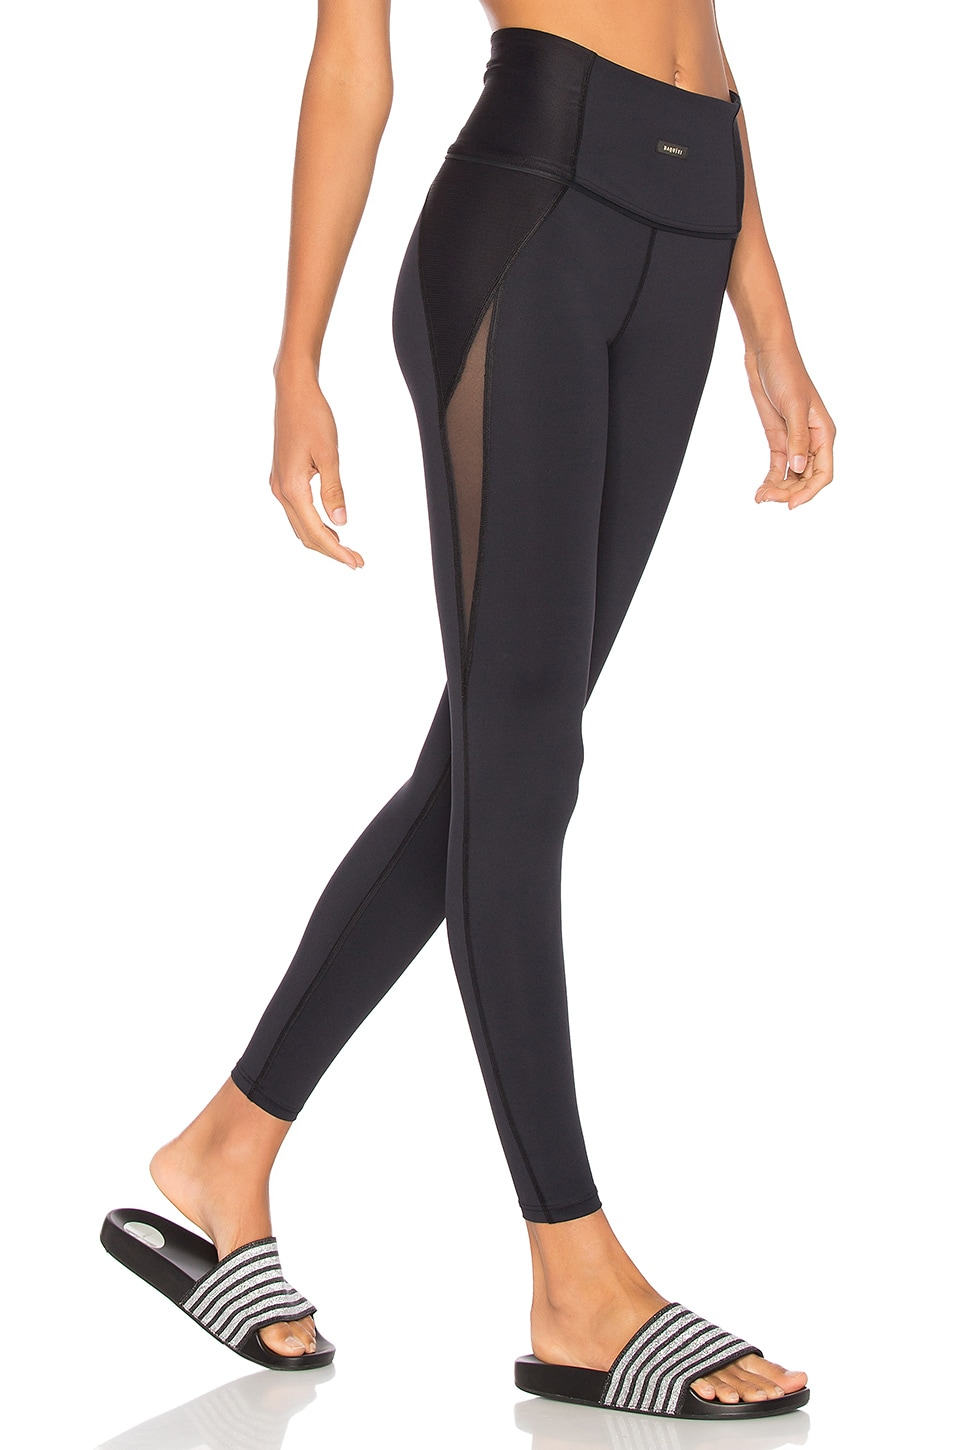 Velocity Legging by Daquini